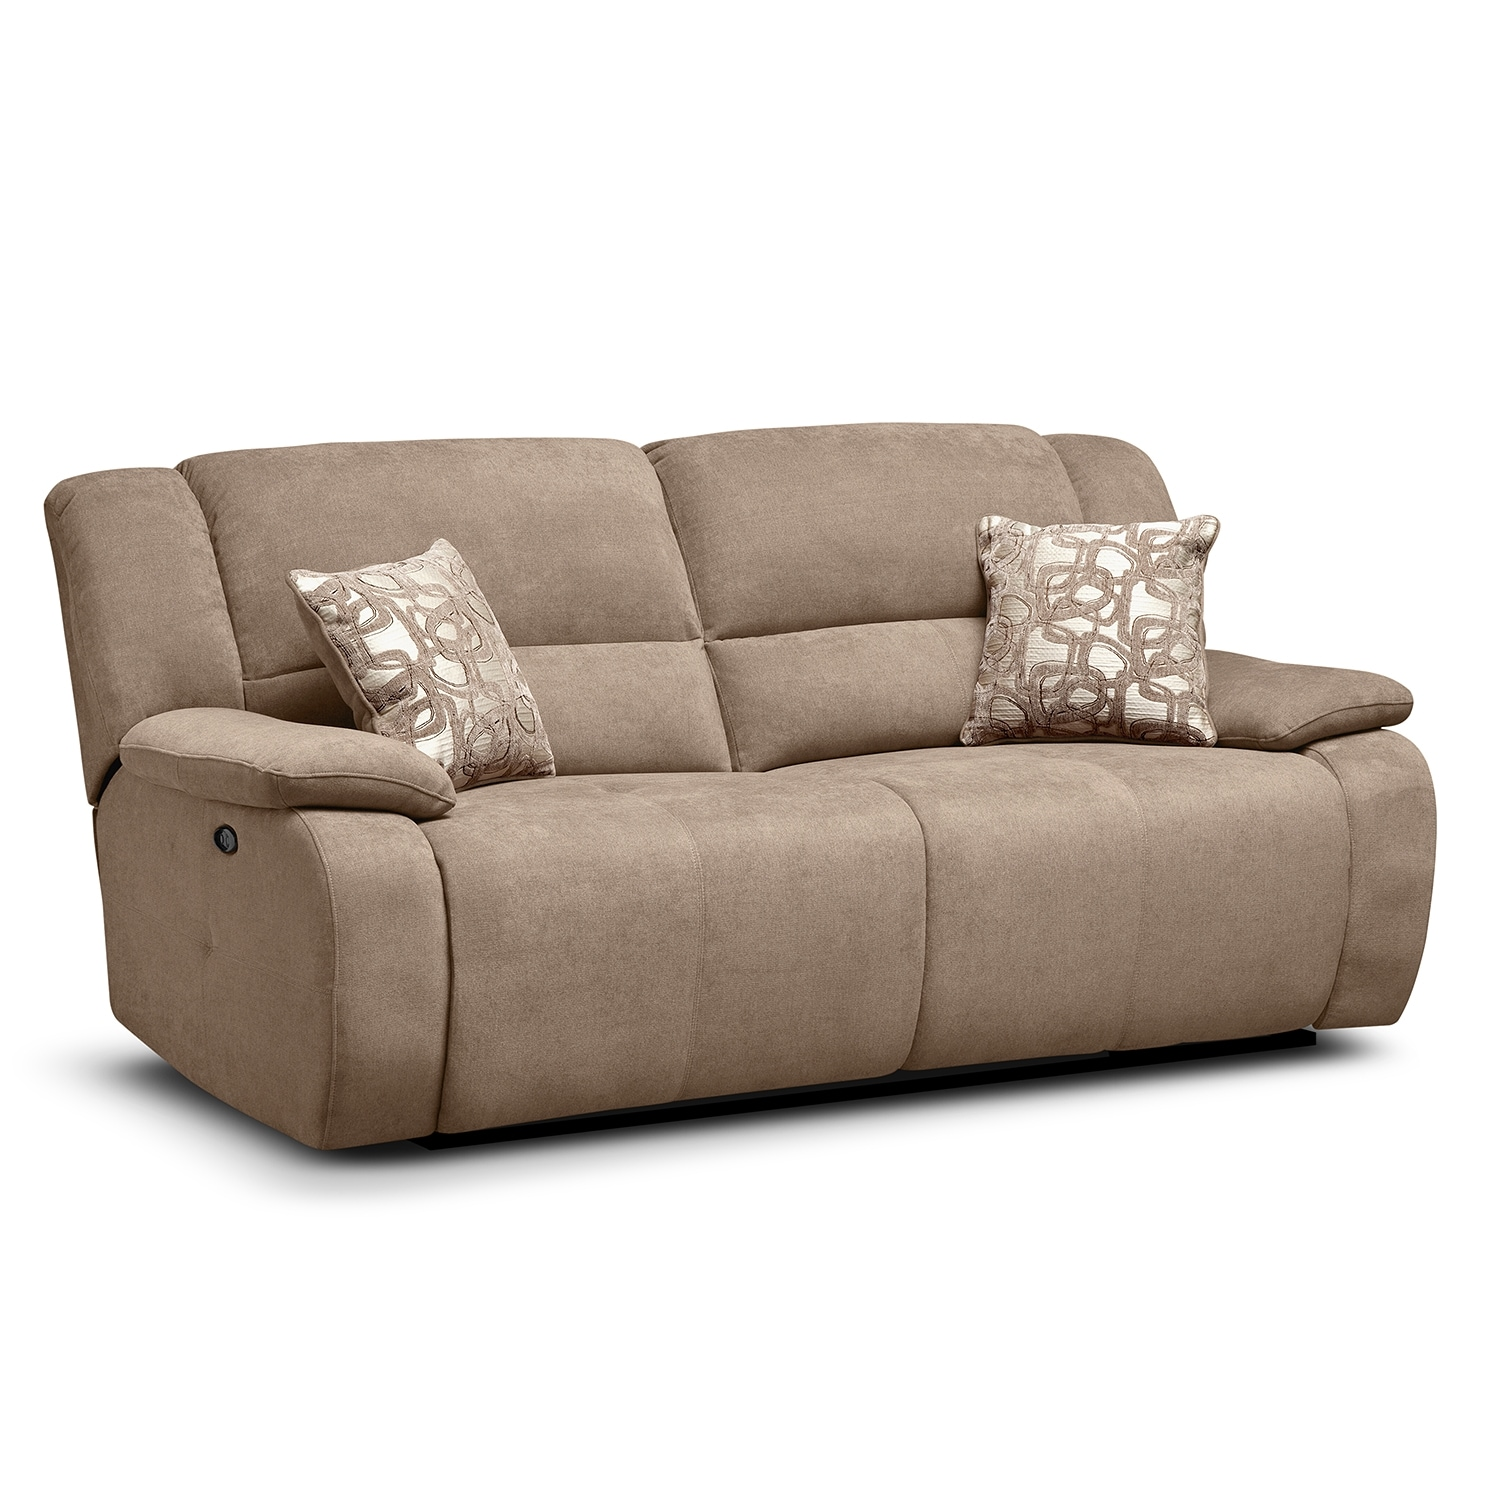 Value city furniture Power reclining sofas and loveseats